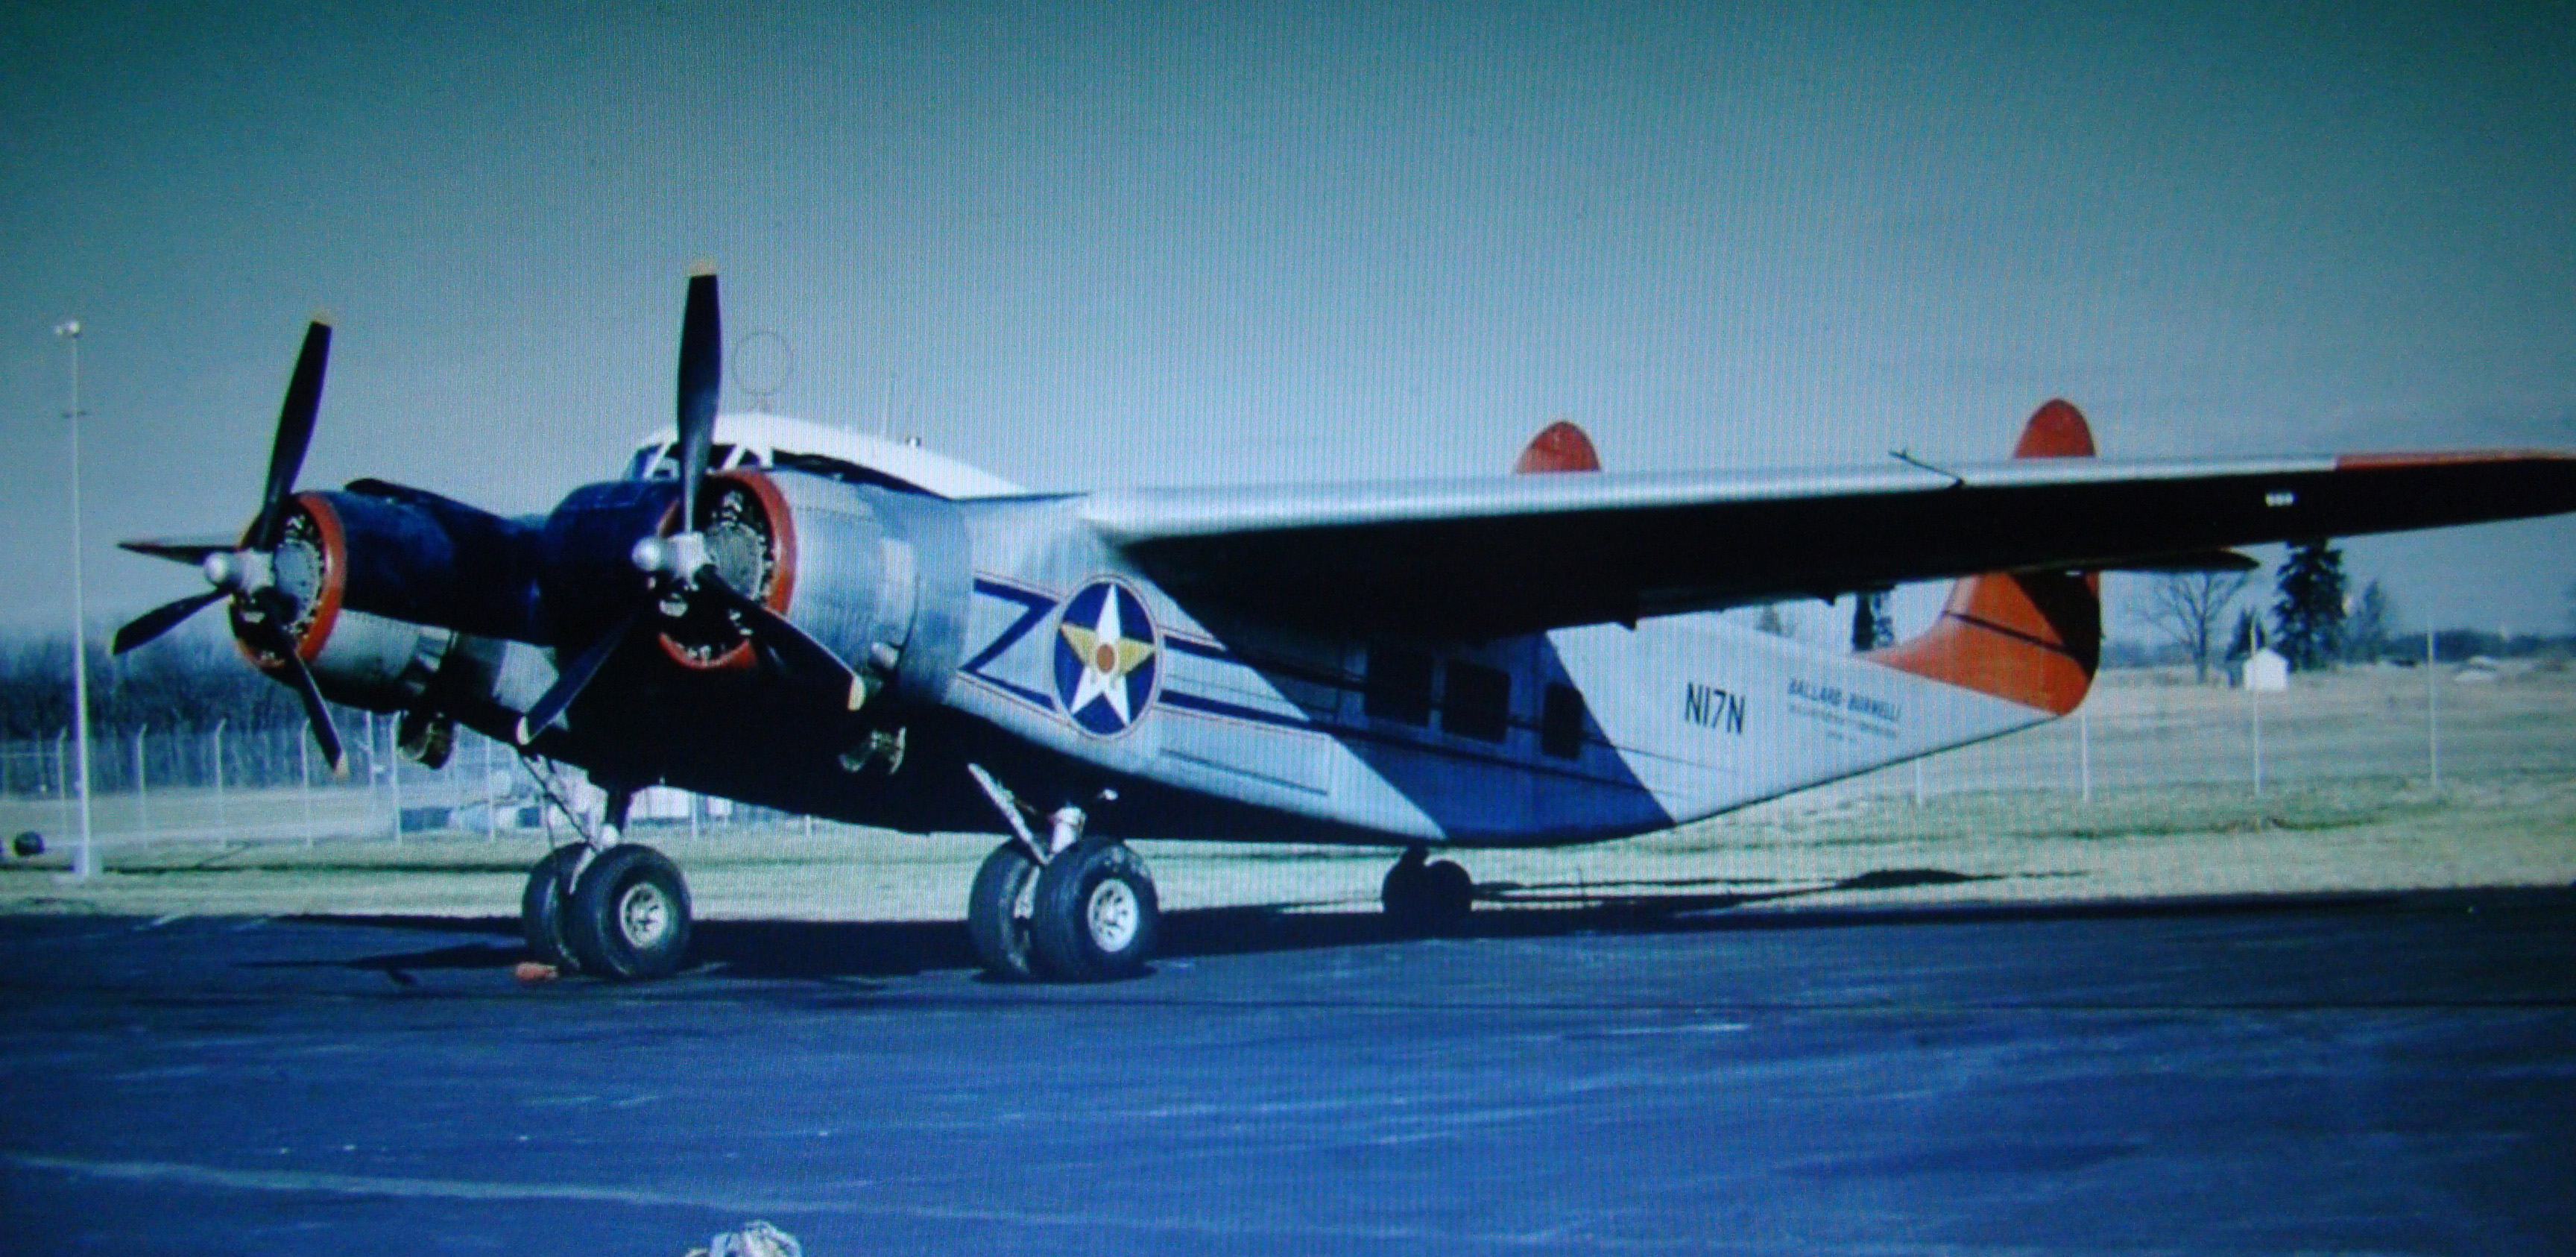 The Loadmaster's future color scheme once she is fully restored. (photo via NEAM)